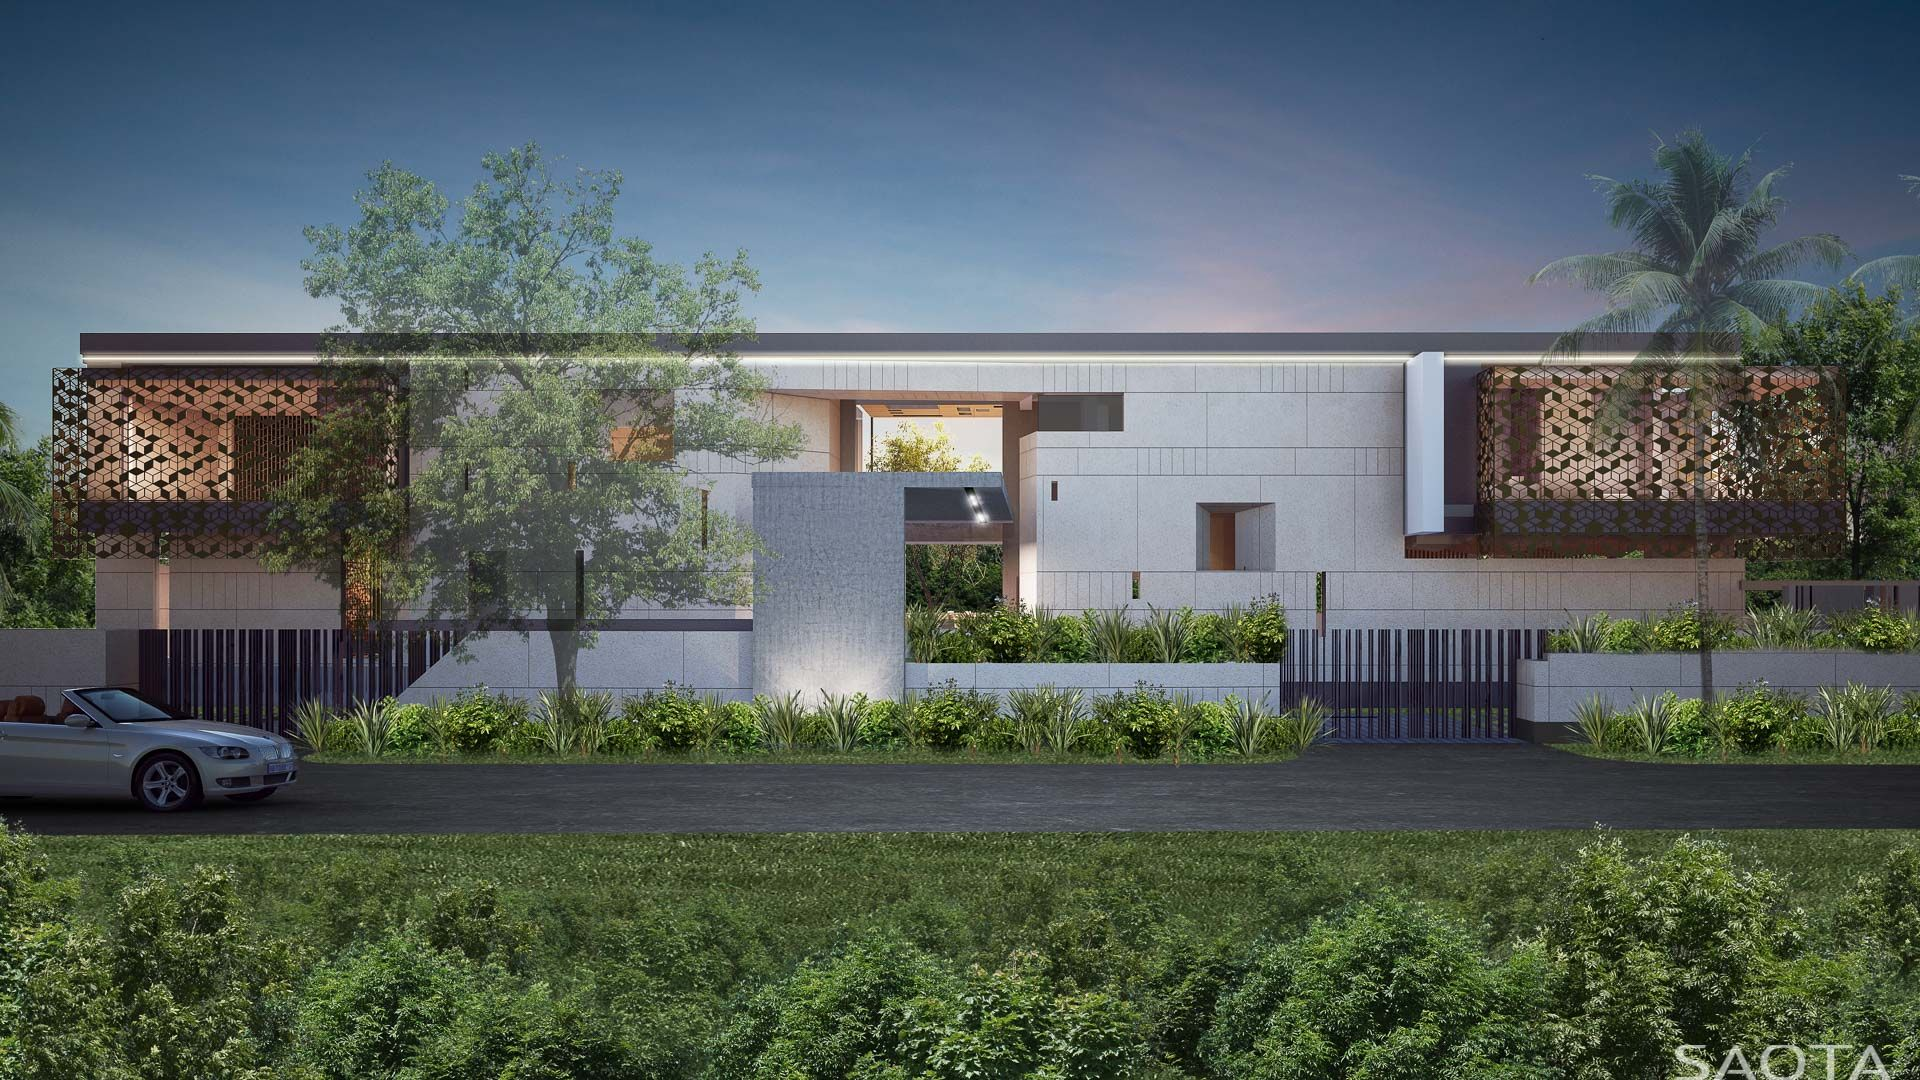 The Site Is A Thin Eastfacing Strip Along The Edge Of A Golf - Modern house jakarta